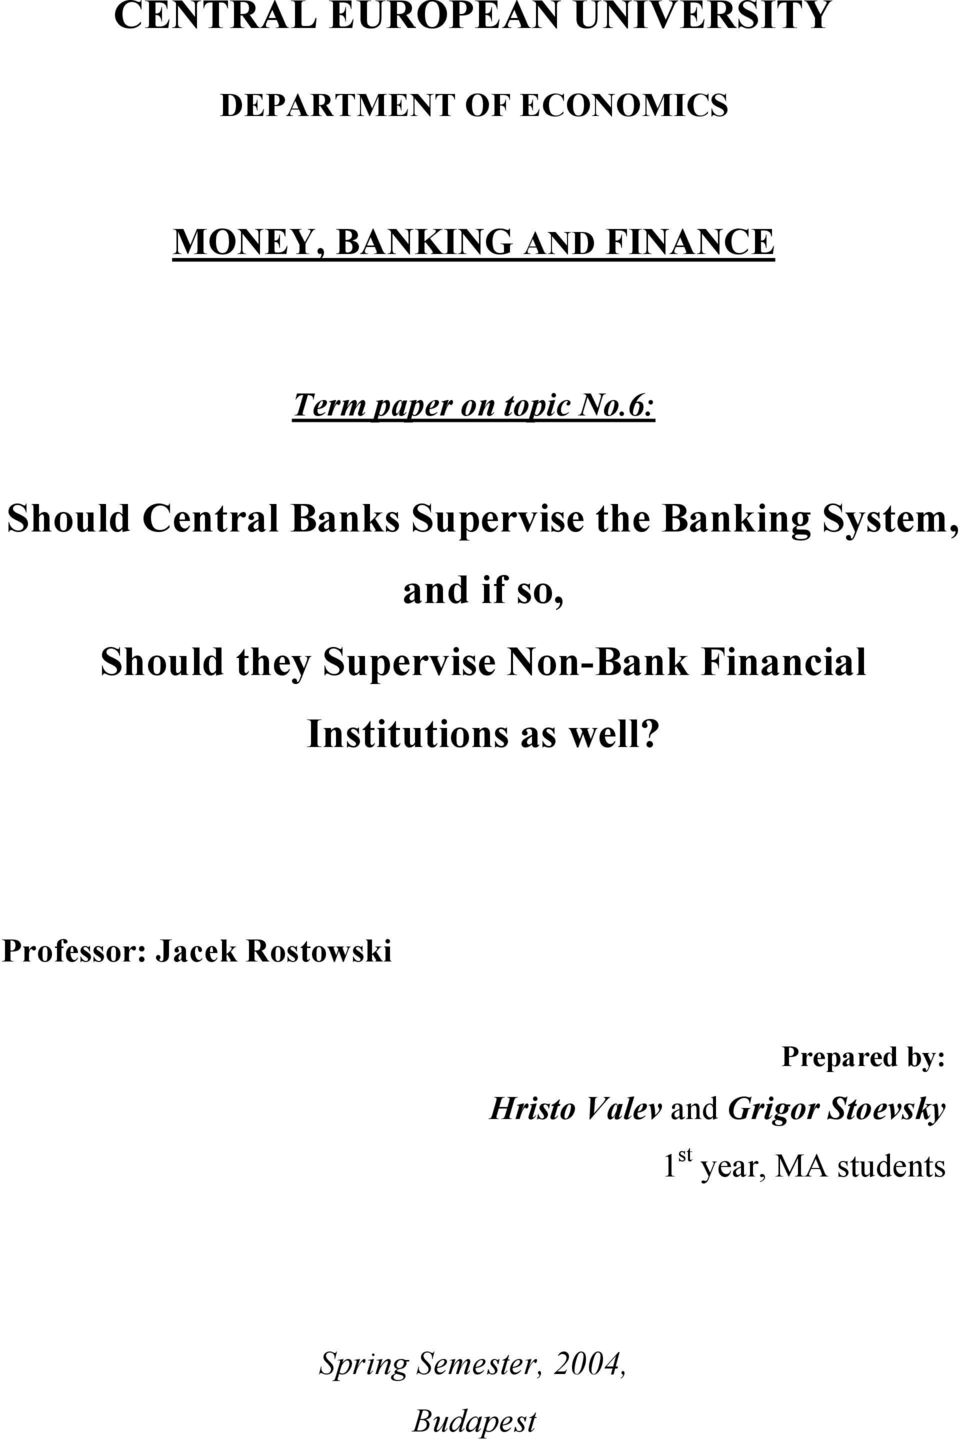 6: Should Central Banks Supervise the Banking System, and if so, Should they Supervise